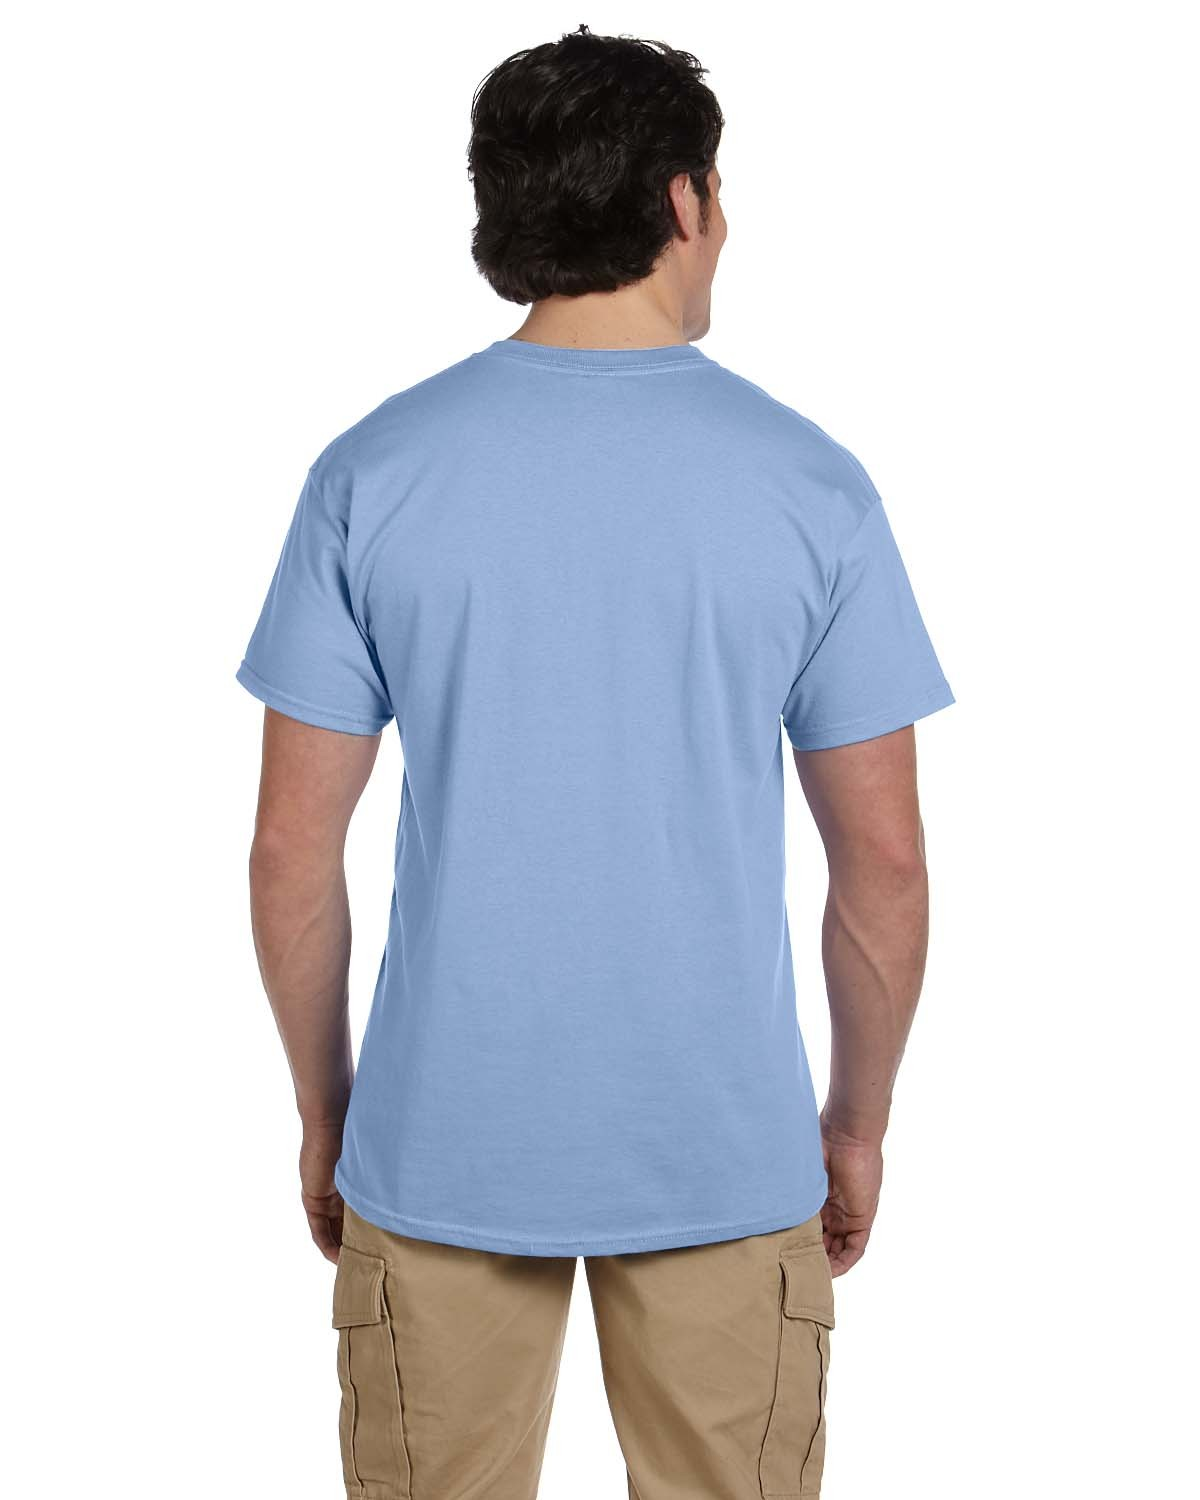 5170 Hanes LIGHT BLUE